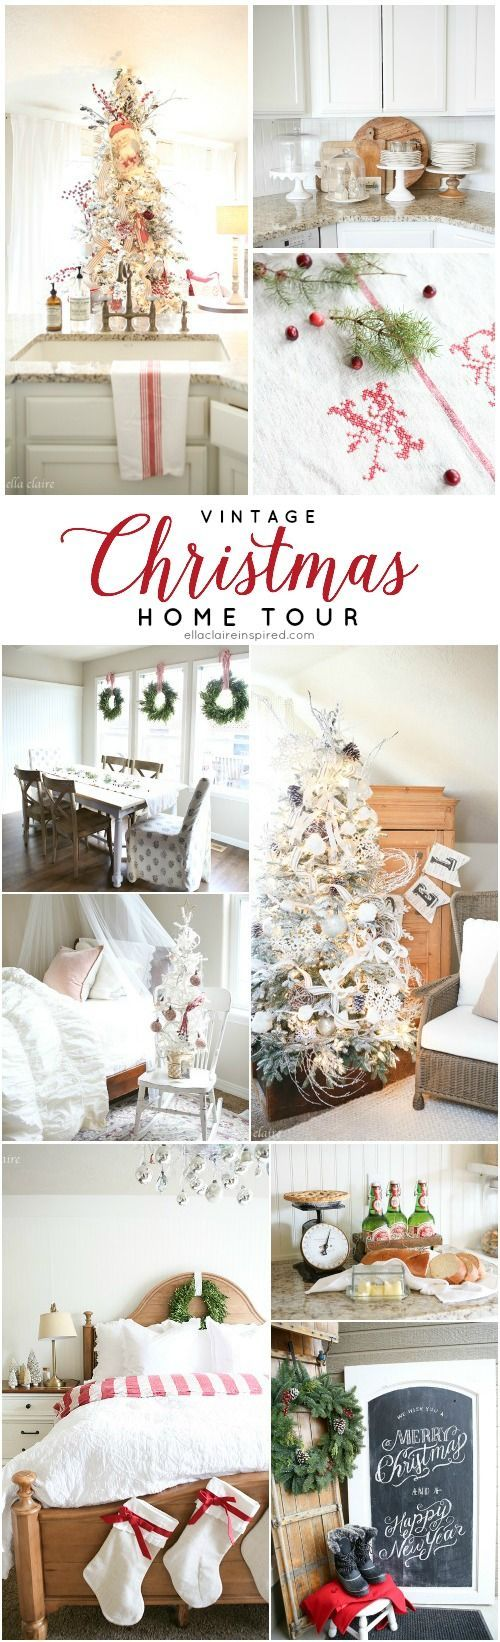 102 best Christmas Home Tours images on Pinterest | Christmas decor ...